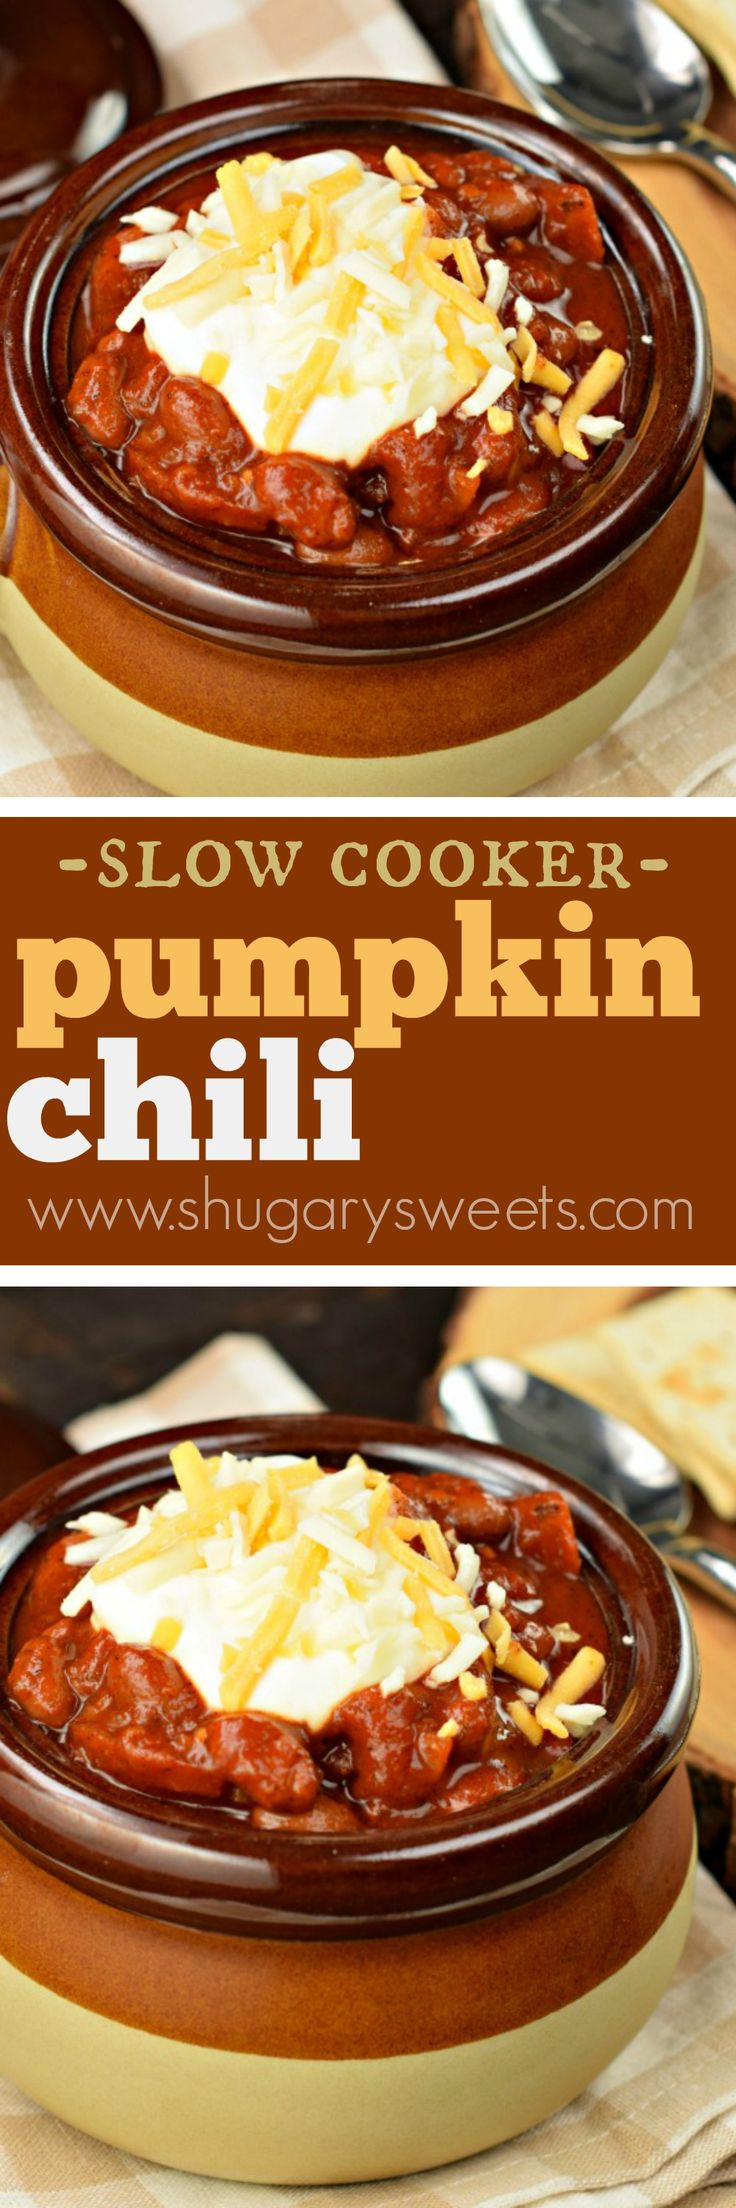 Hearty Pumpkin Chili is a delicious, vegetarian dish made in the slow cooker! My family didn't even miss the meat in this one! #vegetarian #dinner #slowcooker #crockpot